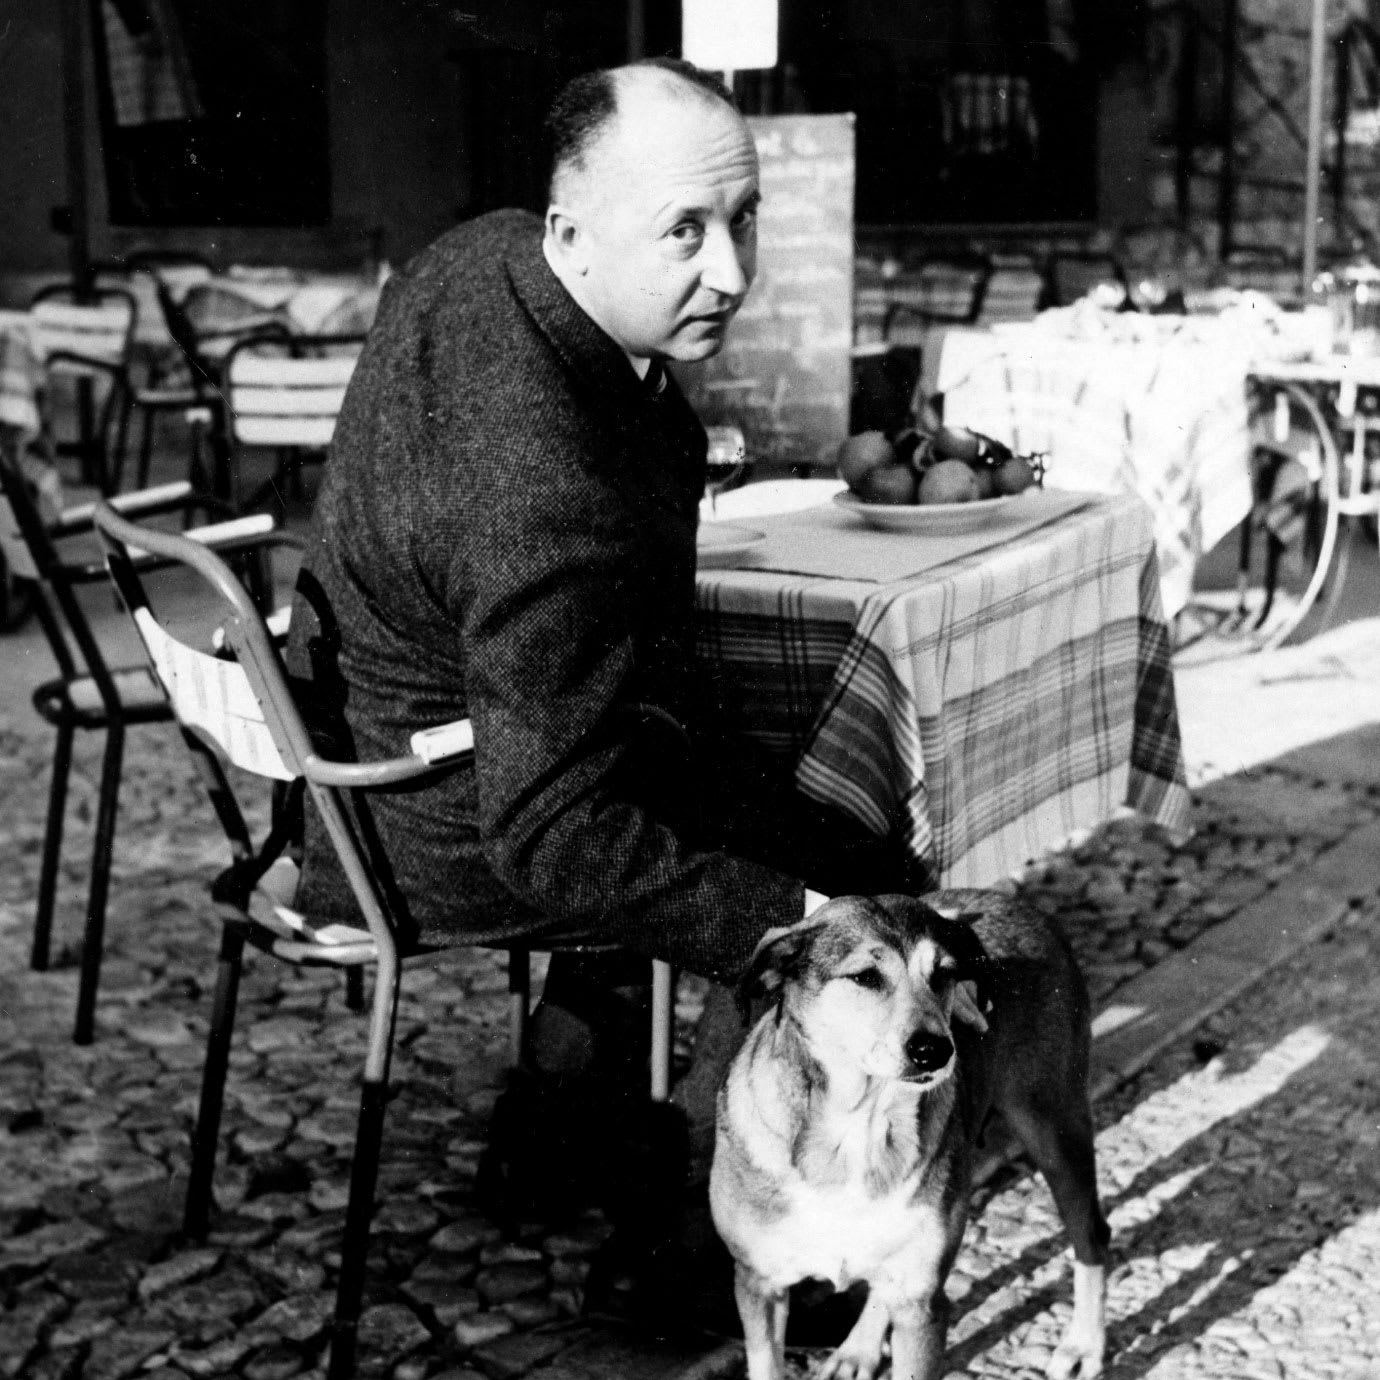 A man patting a dog while sat at an outside restaurant table.